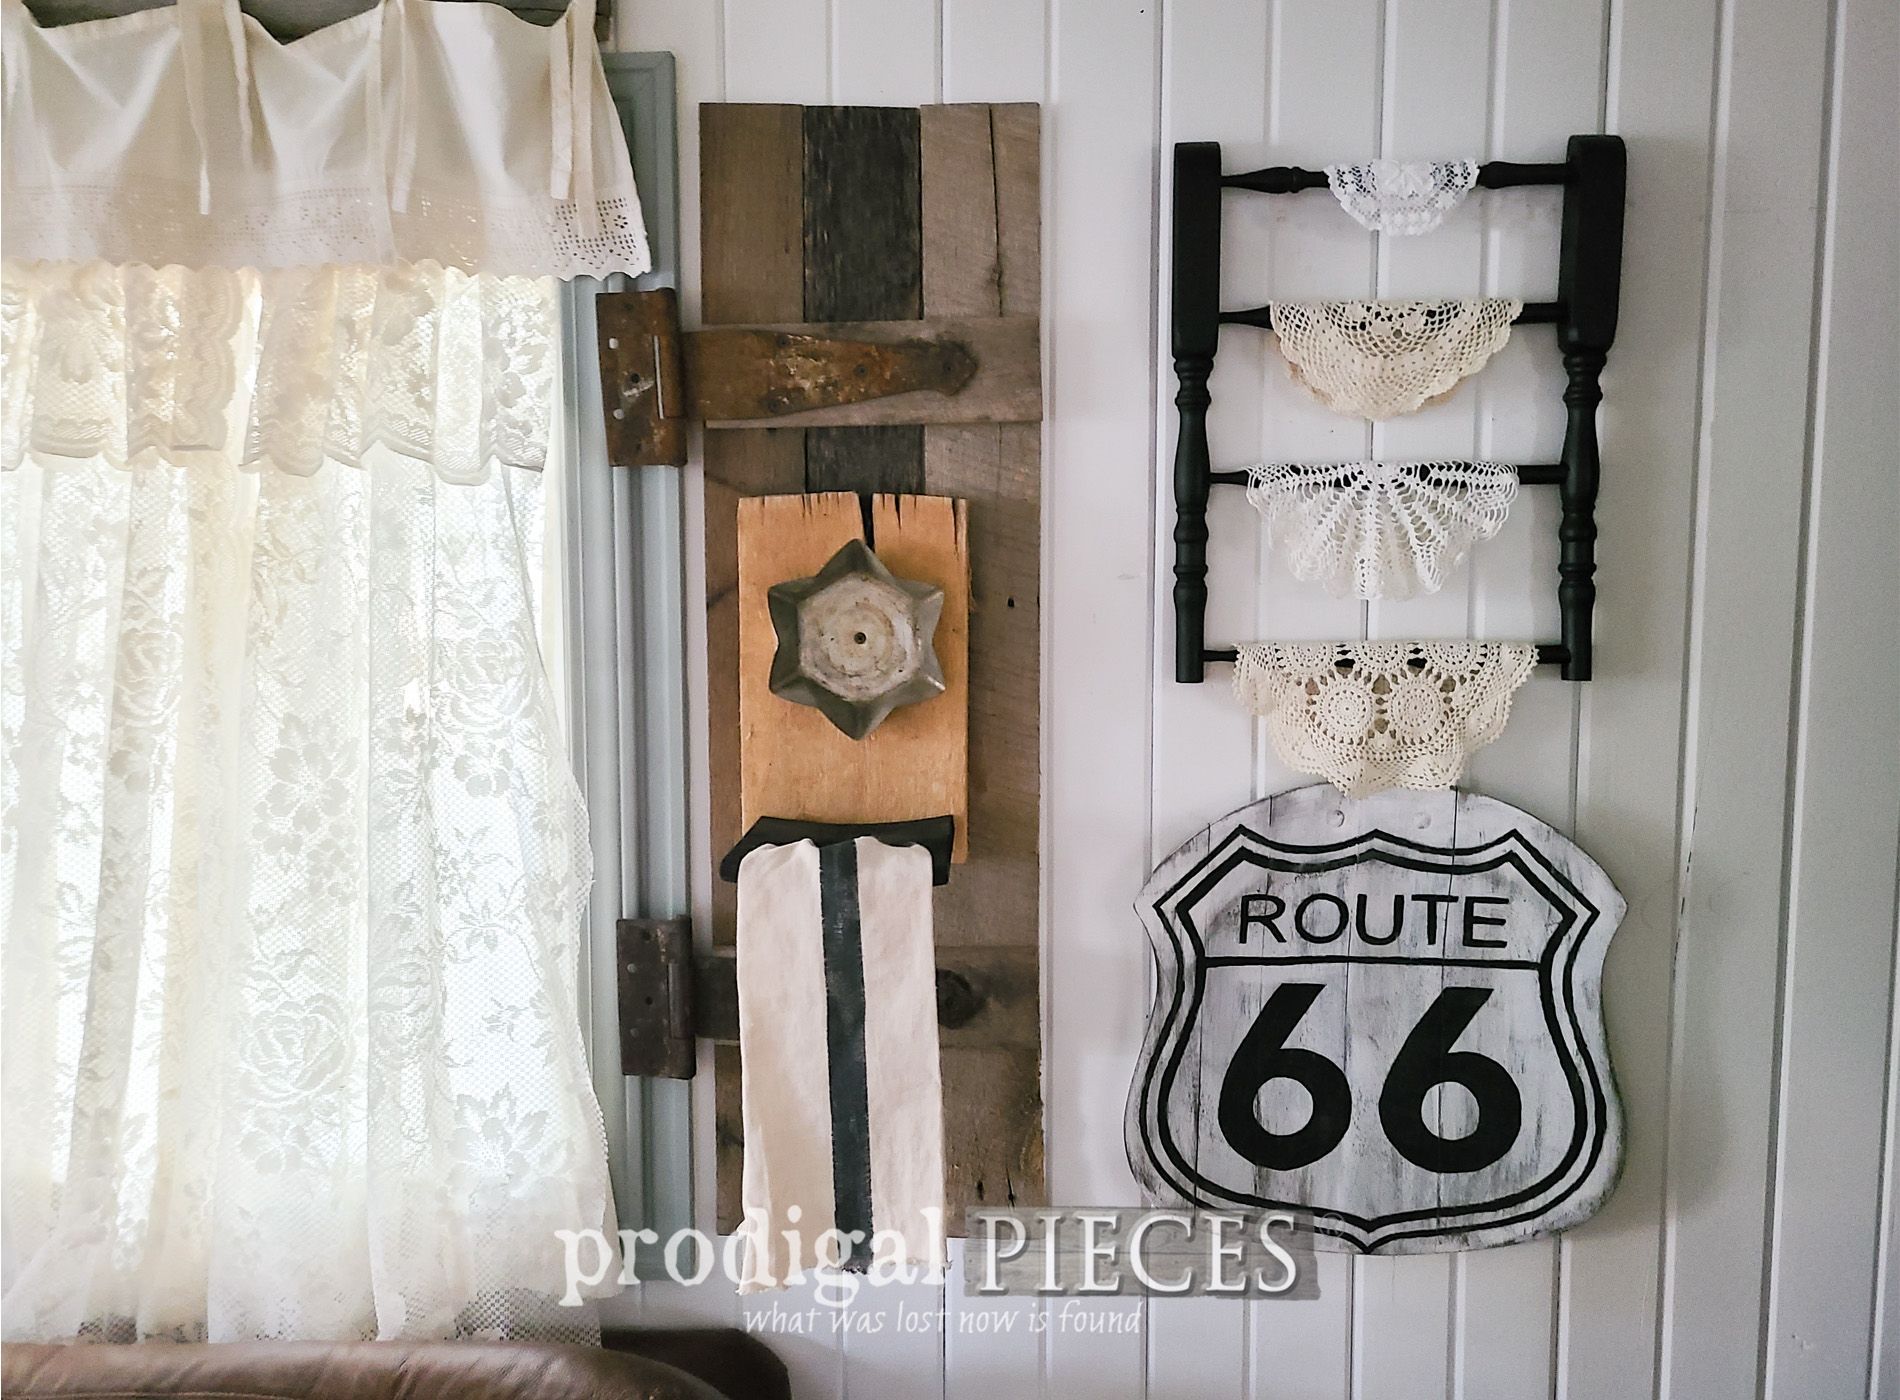 Featured Upcycled Broken Chair into Farmhouse Decor by Larissa of Prodigal Pieces   proidigalpieces.com #prodigalpieces #diy #farmhouse #upcycled #home #homedecor